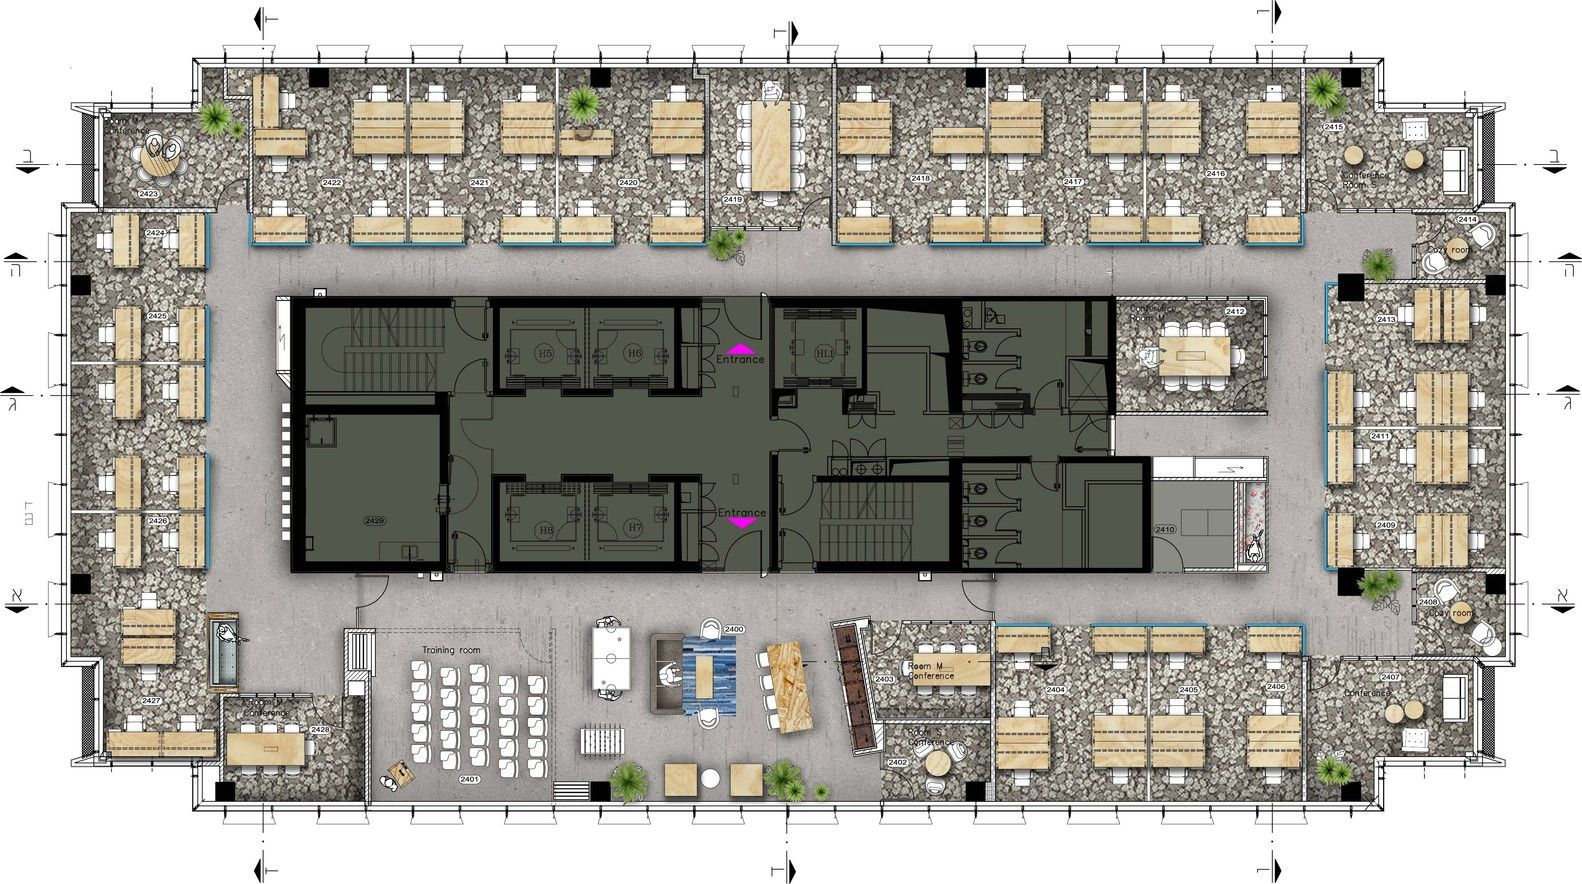 Gallery Of Palo Alto Networks Setter Architects 9 Palo Alto Networks Office Layout Plan Office Floor Plan